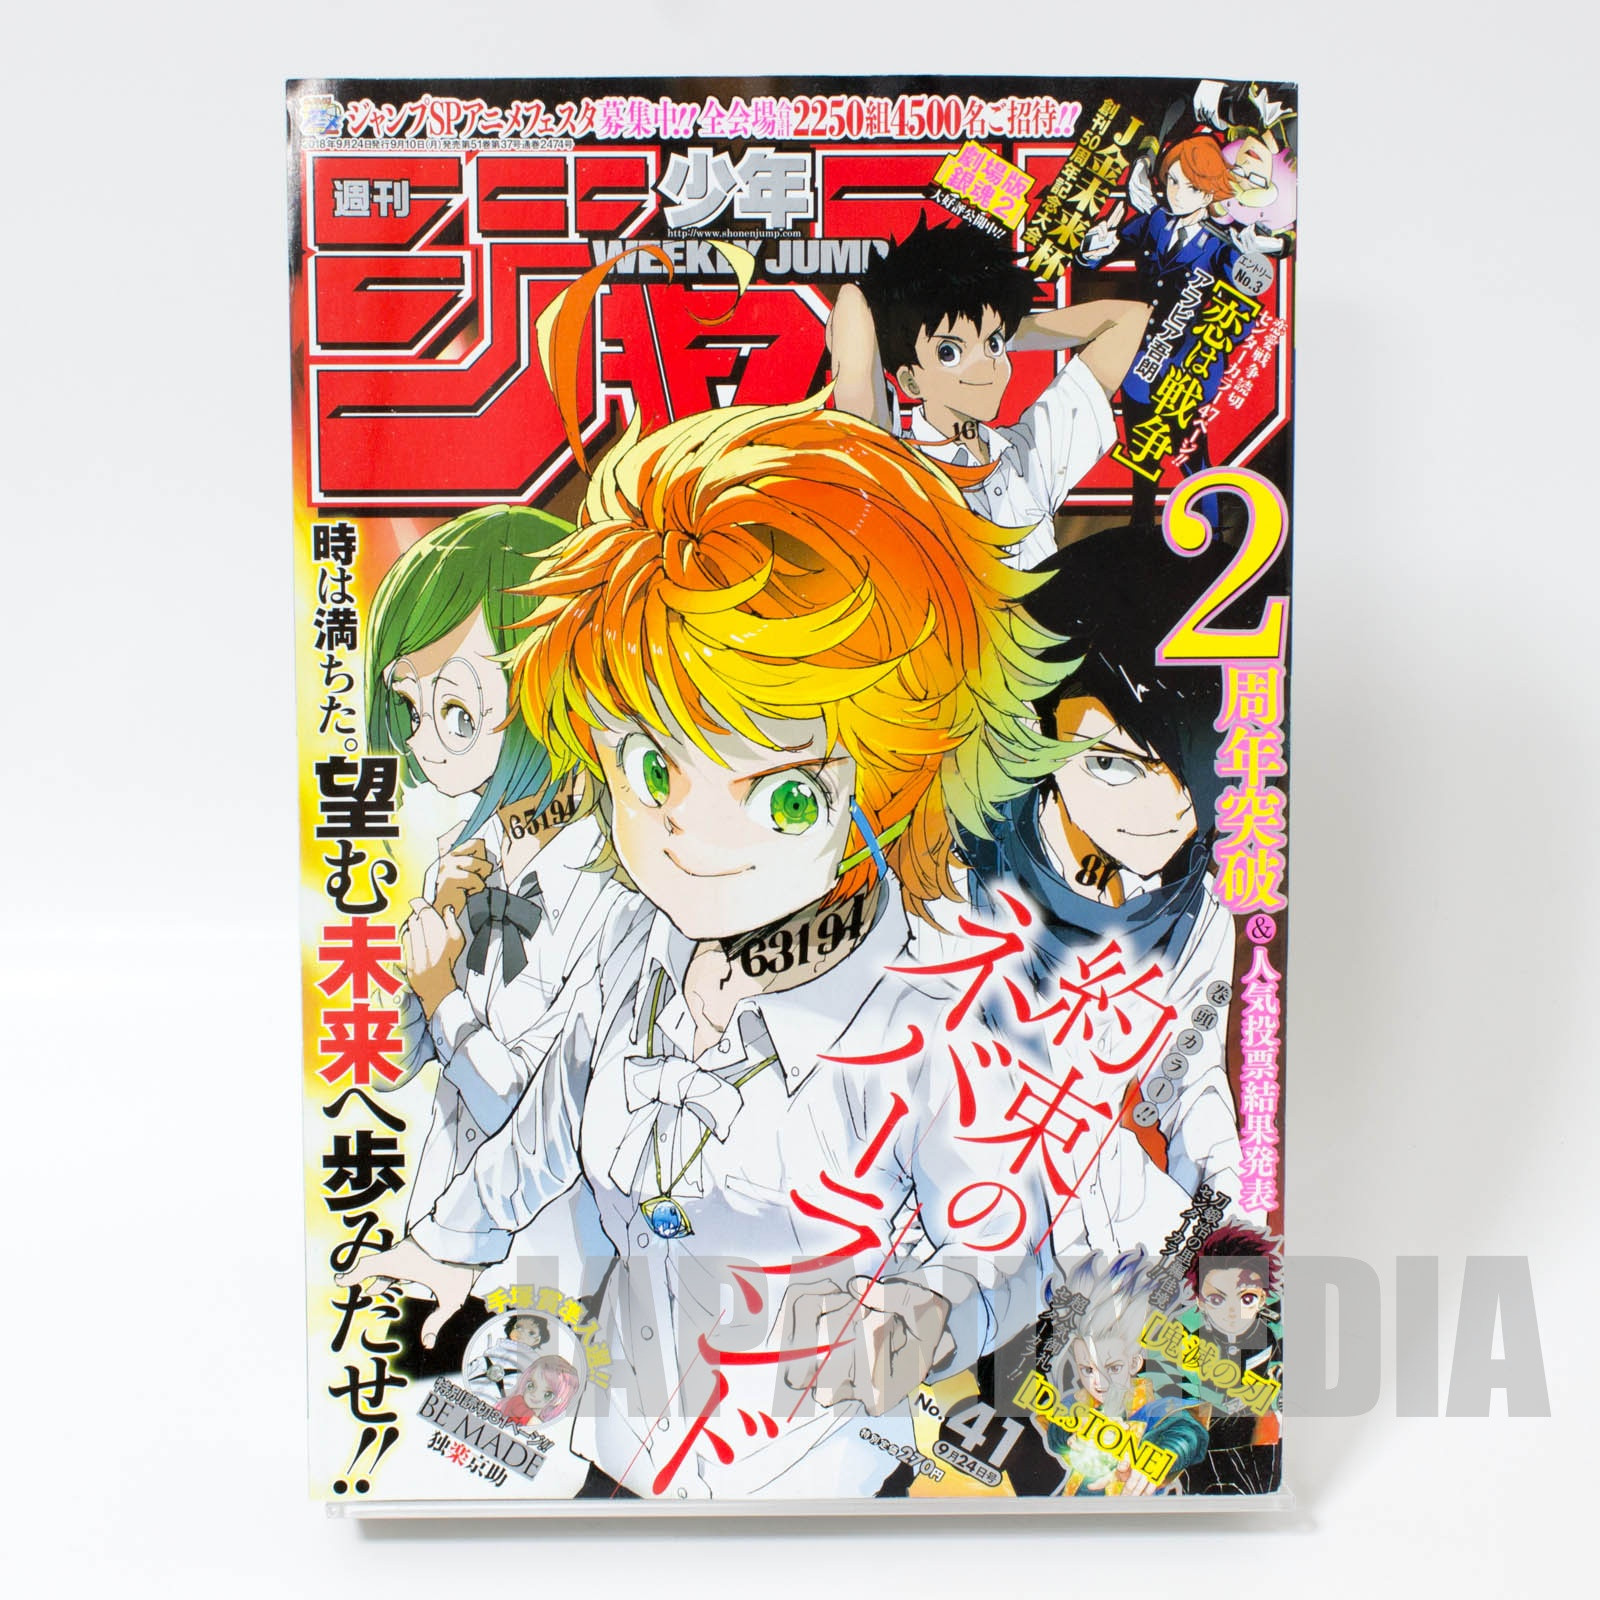 Weekly Shonen JUMP Vol.41 2018 The Promised Neverland / Japanese Magazine JAPAN MANGA